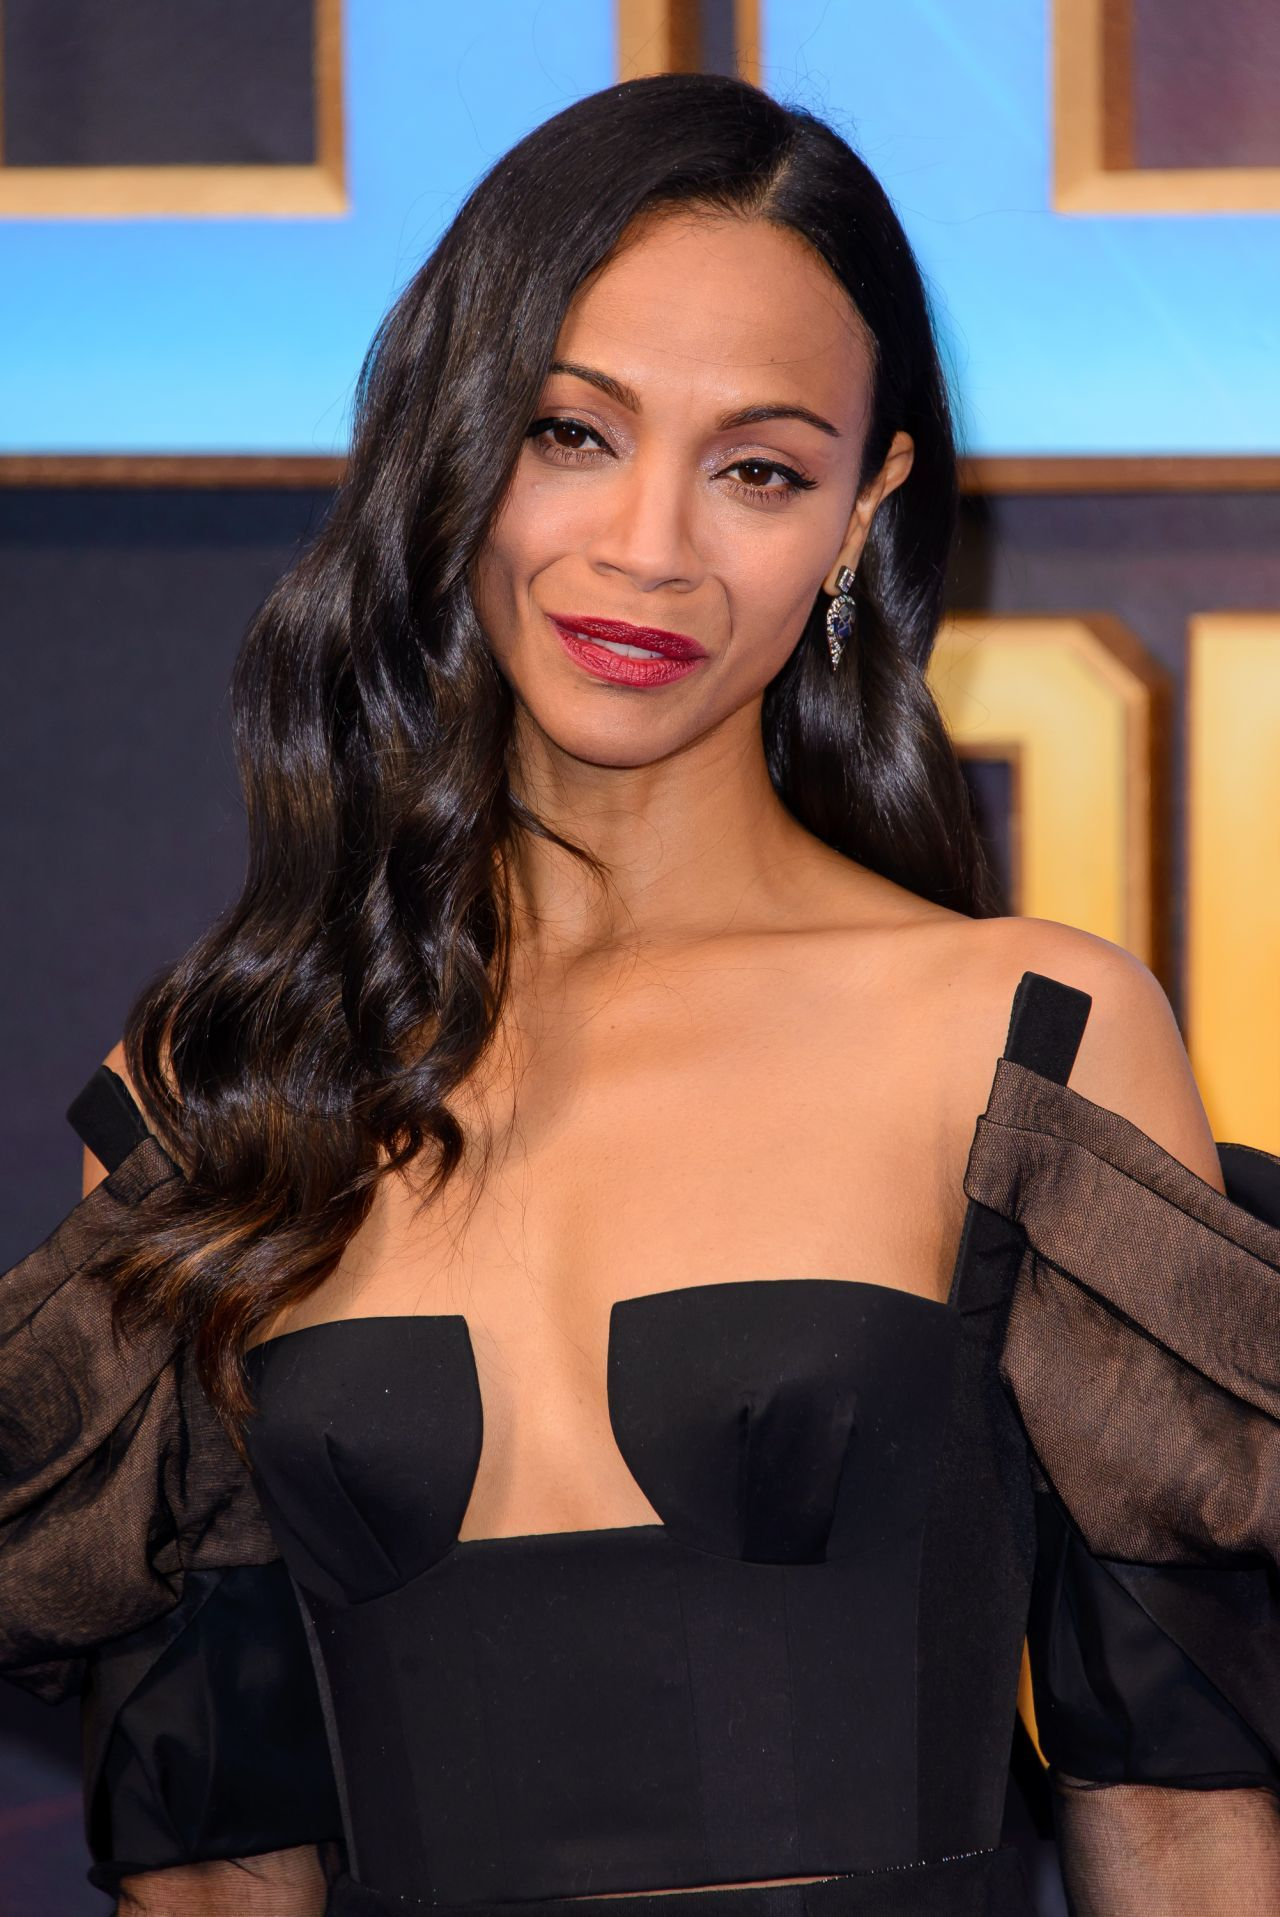 zoe saldana | Zoe Saldana at Guardians of the Galaxy Vol.2 ...